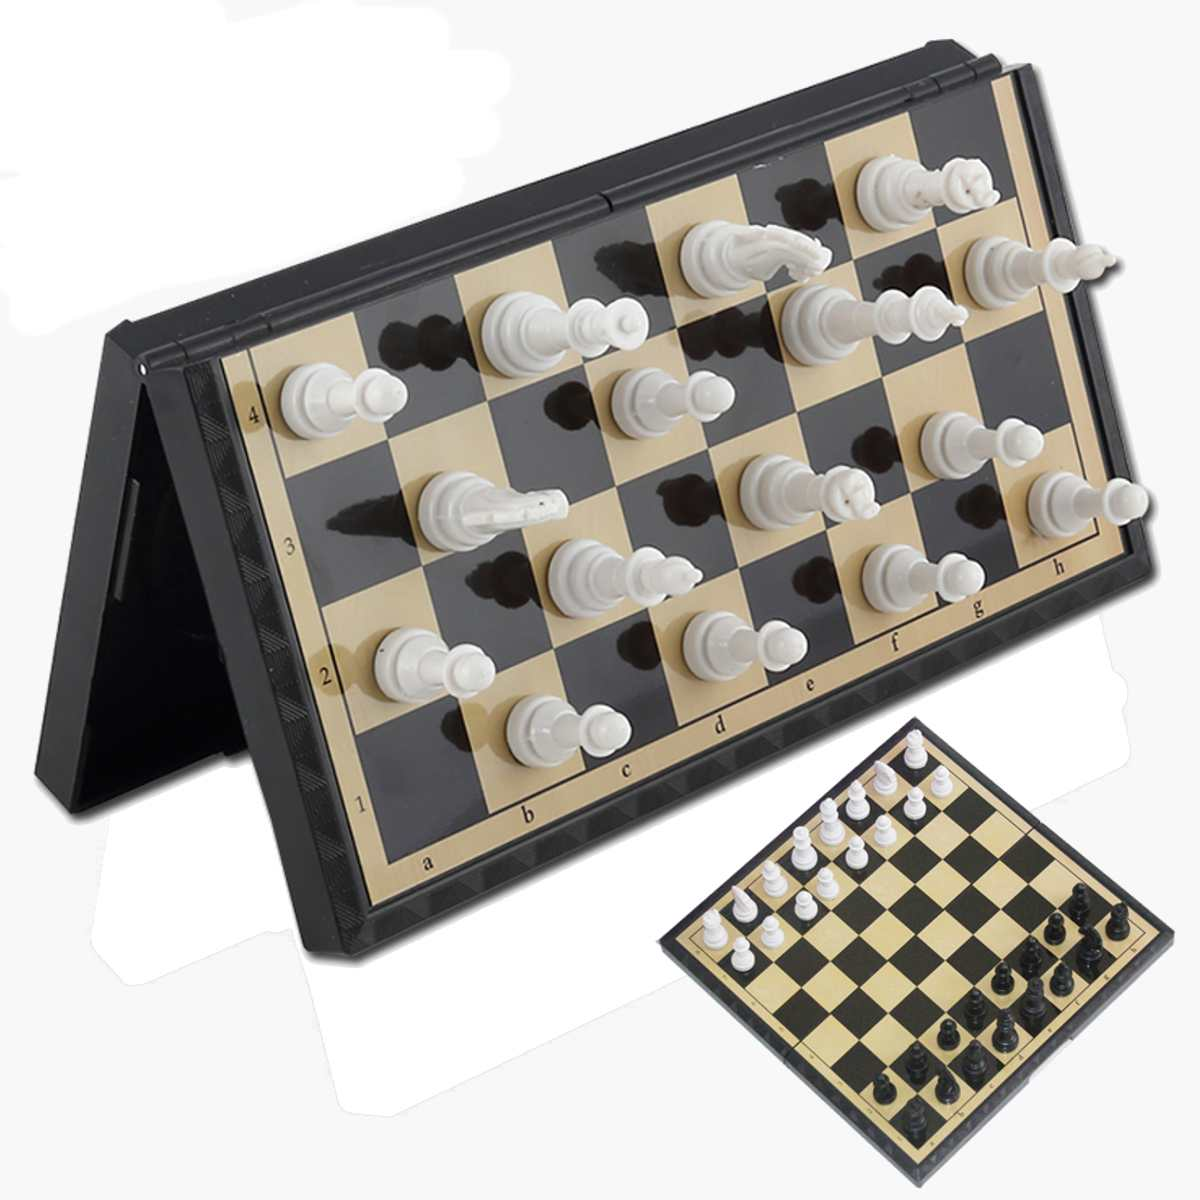 3 In 1 Foldable Magnetic Chess Board Set Outdoor Travel Ches…